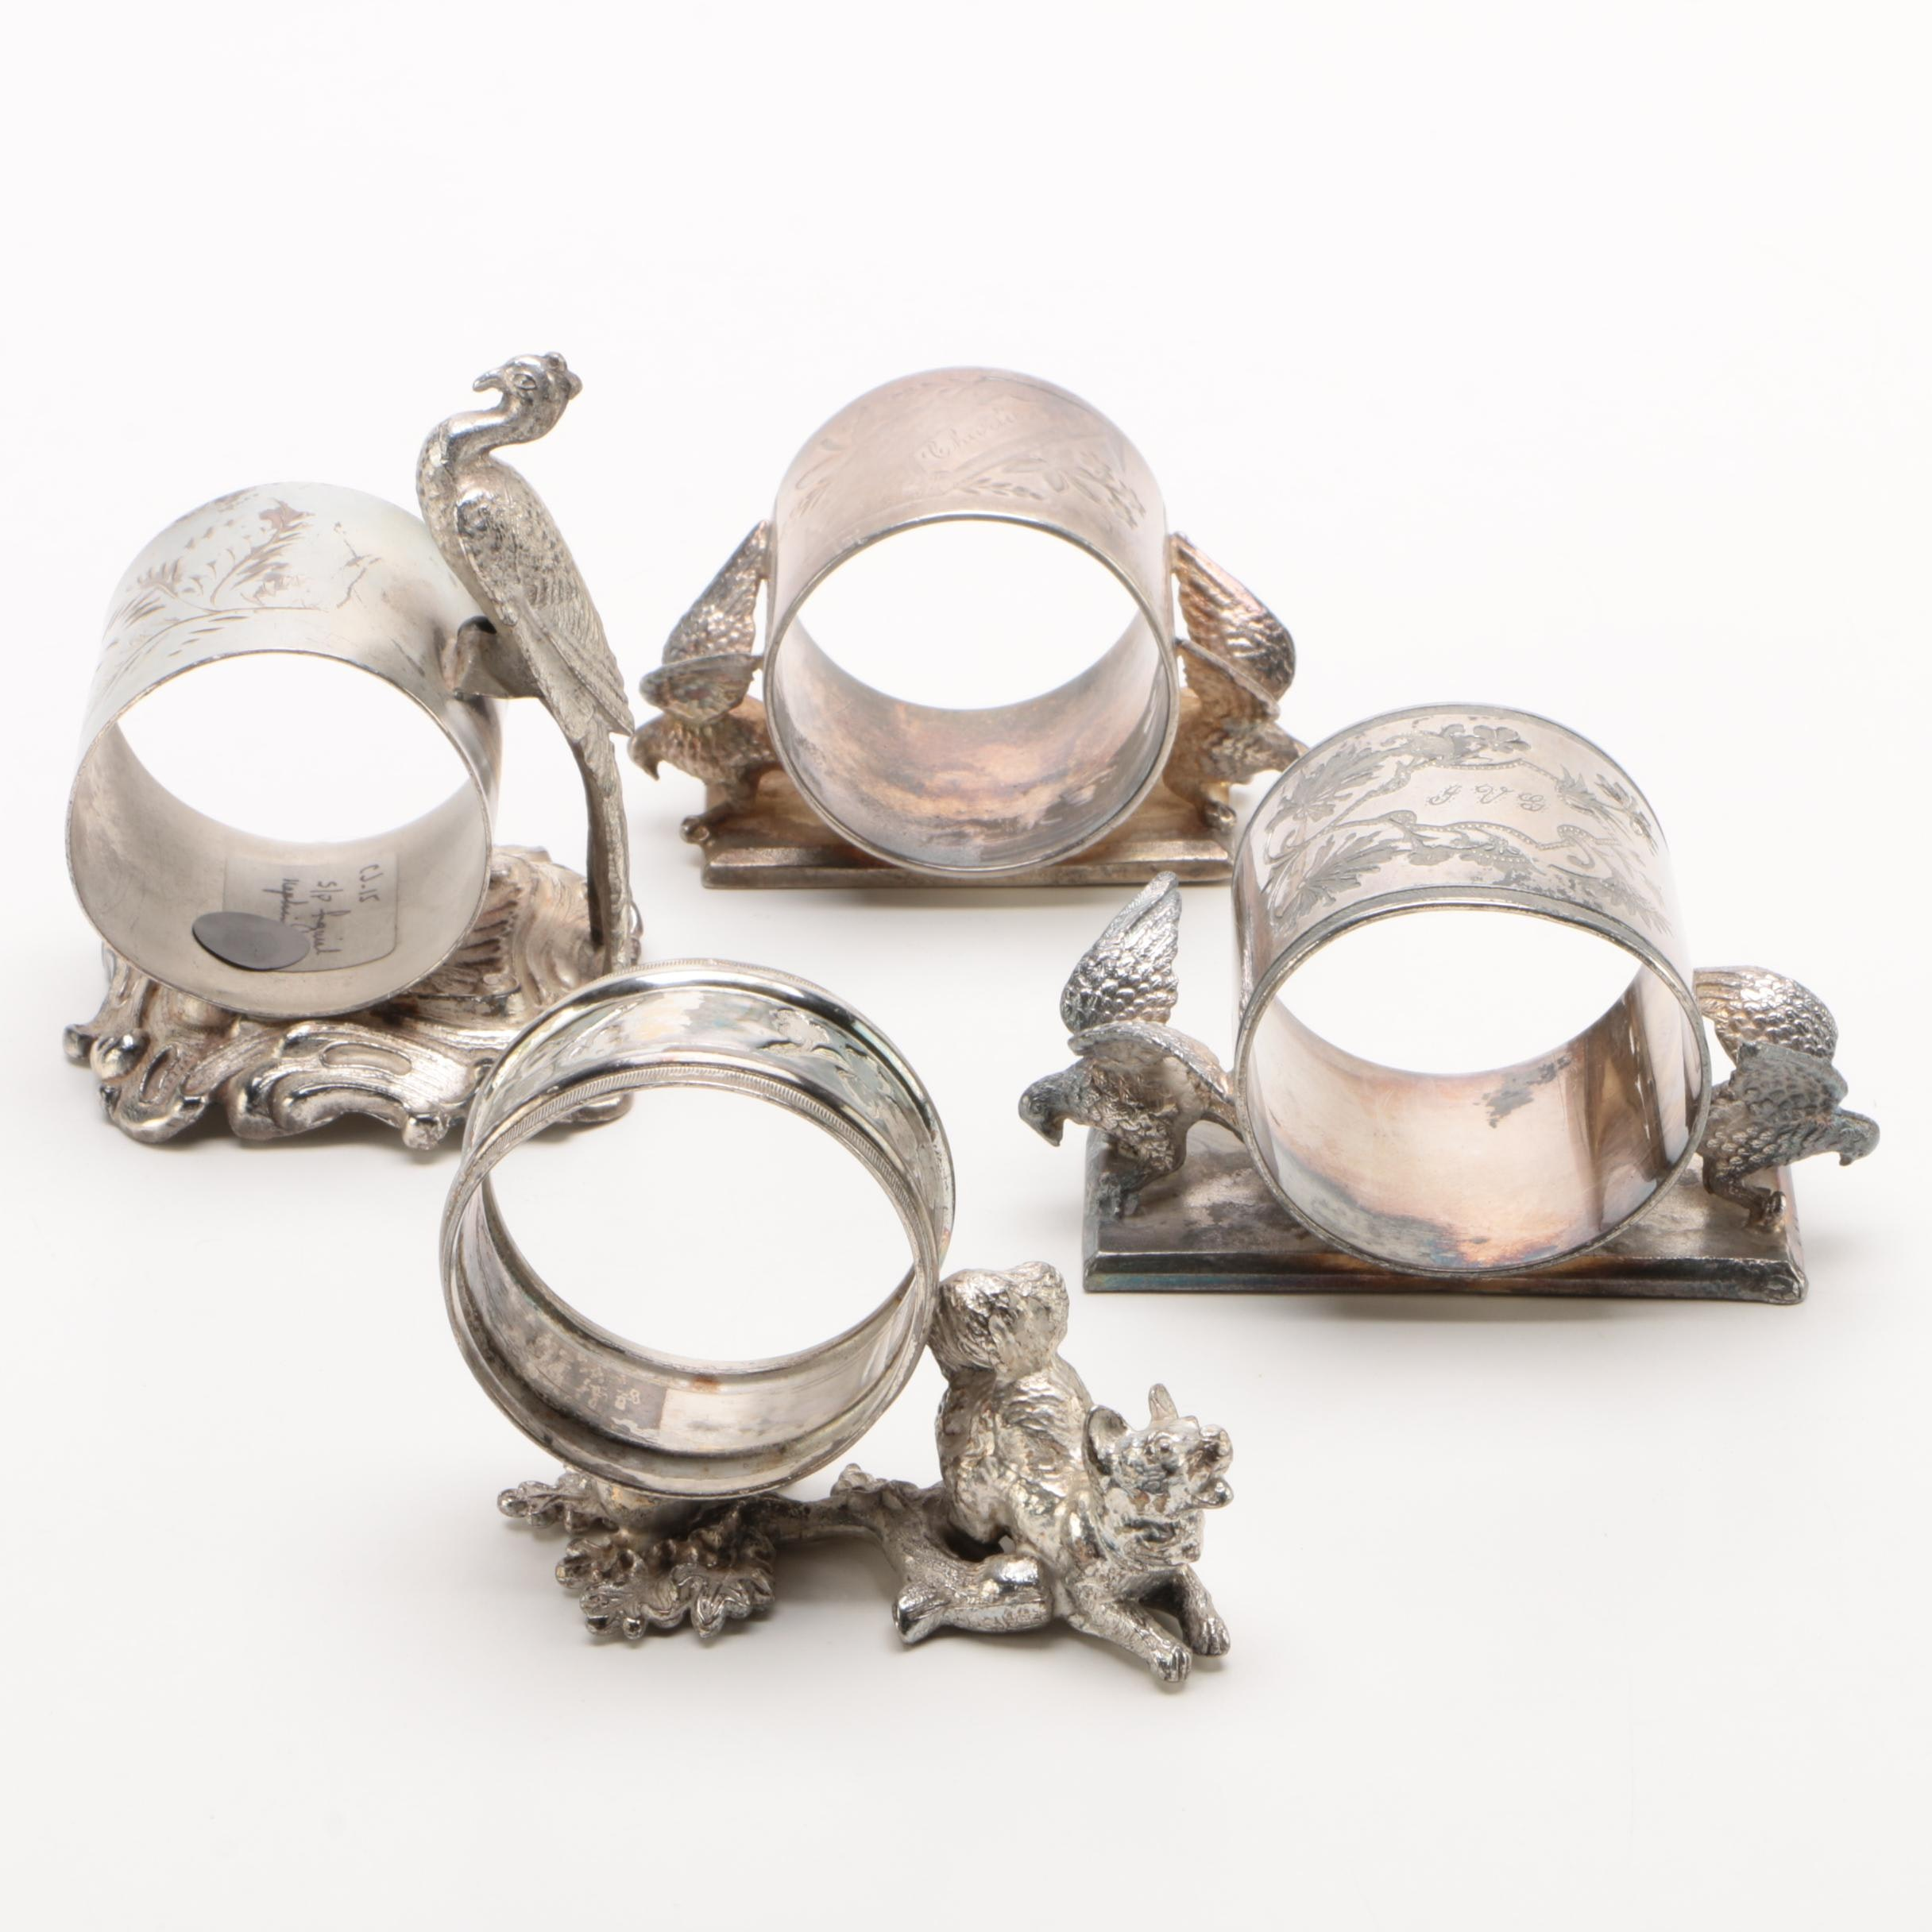 Meriden Britannia Co. Silver Plate Napkin Rings with Others, Early 20th Century